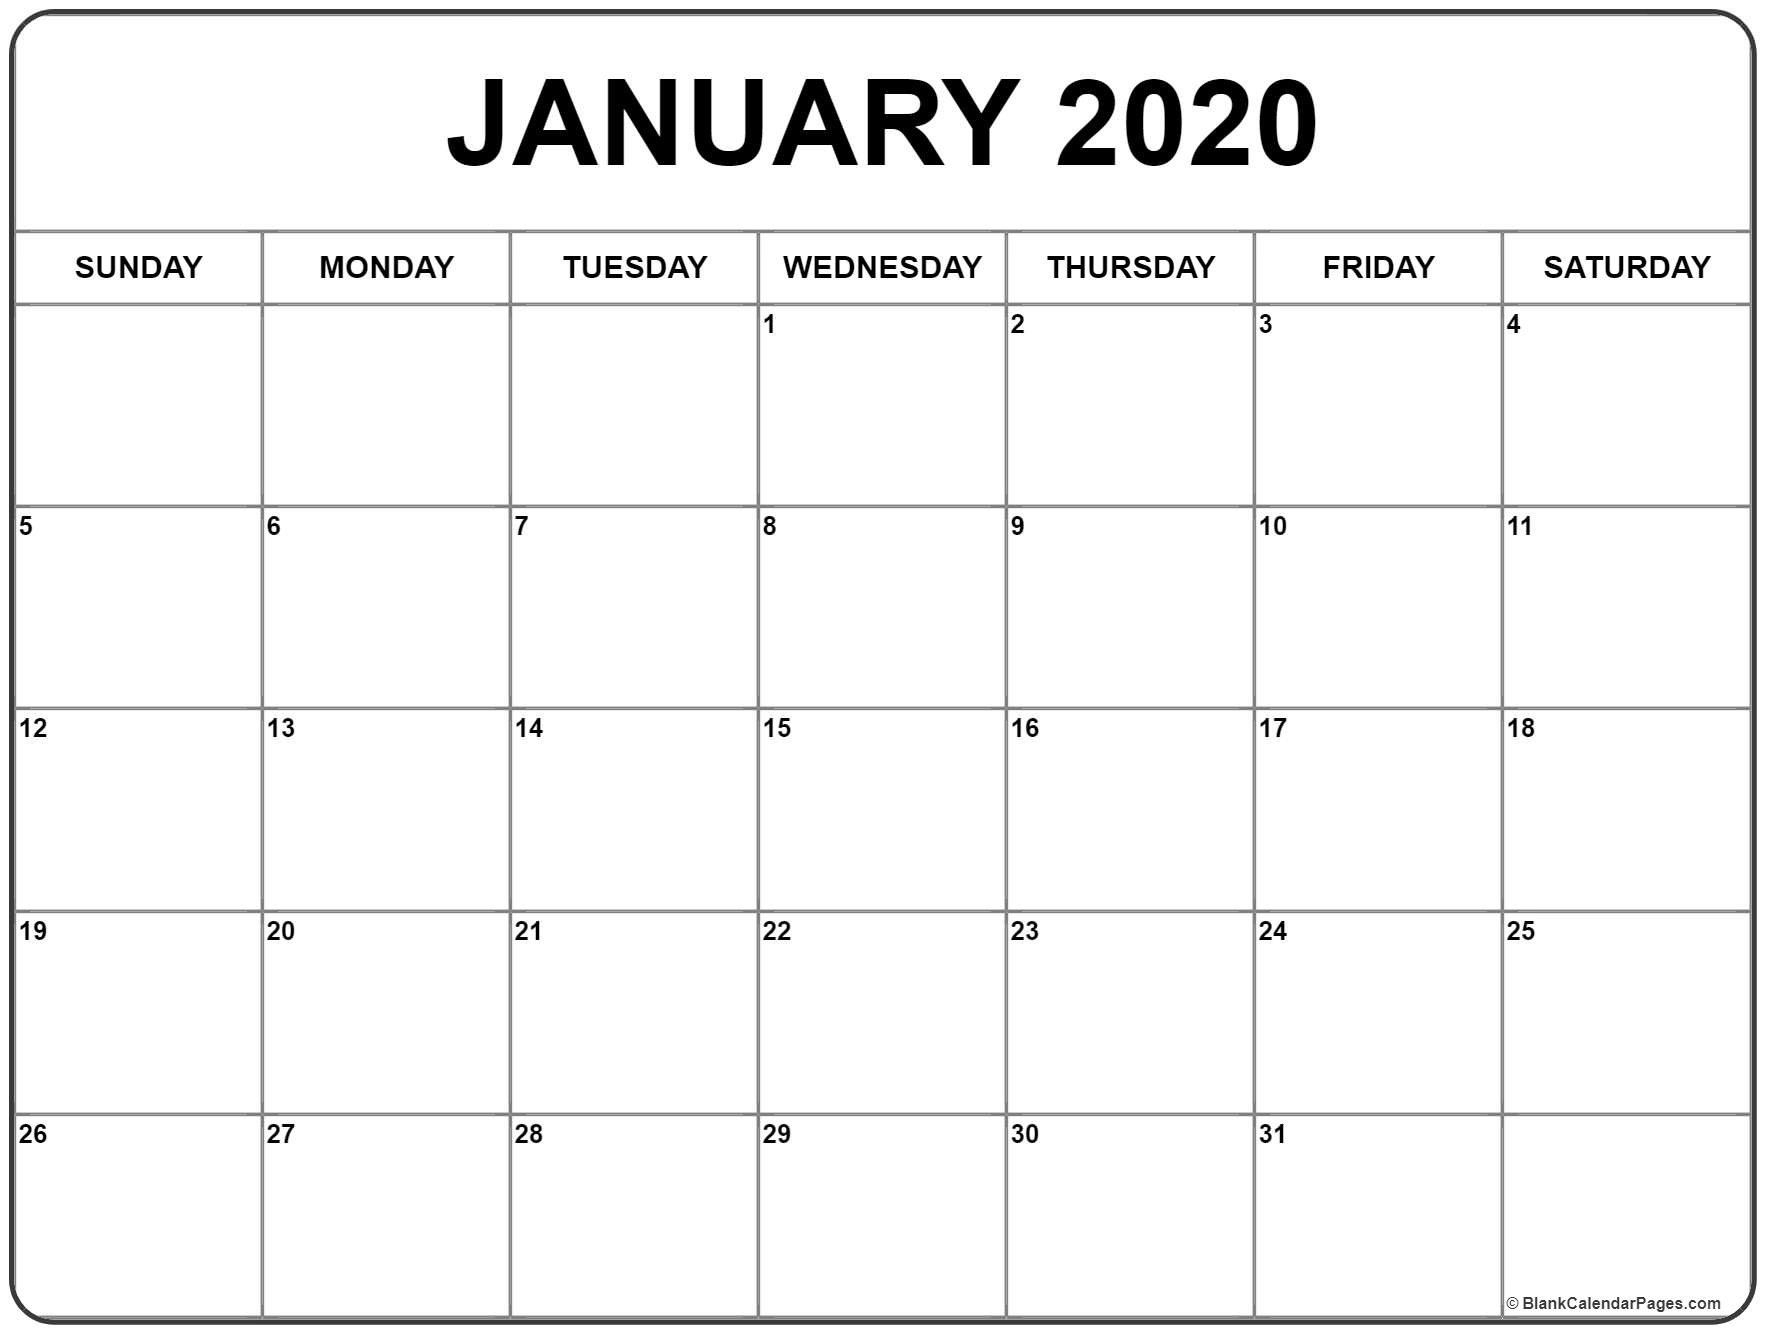 January 2020 Calendar 56 Templates Of 2020 Printable January inside Blank Calander 2020 Fill In